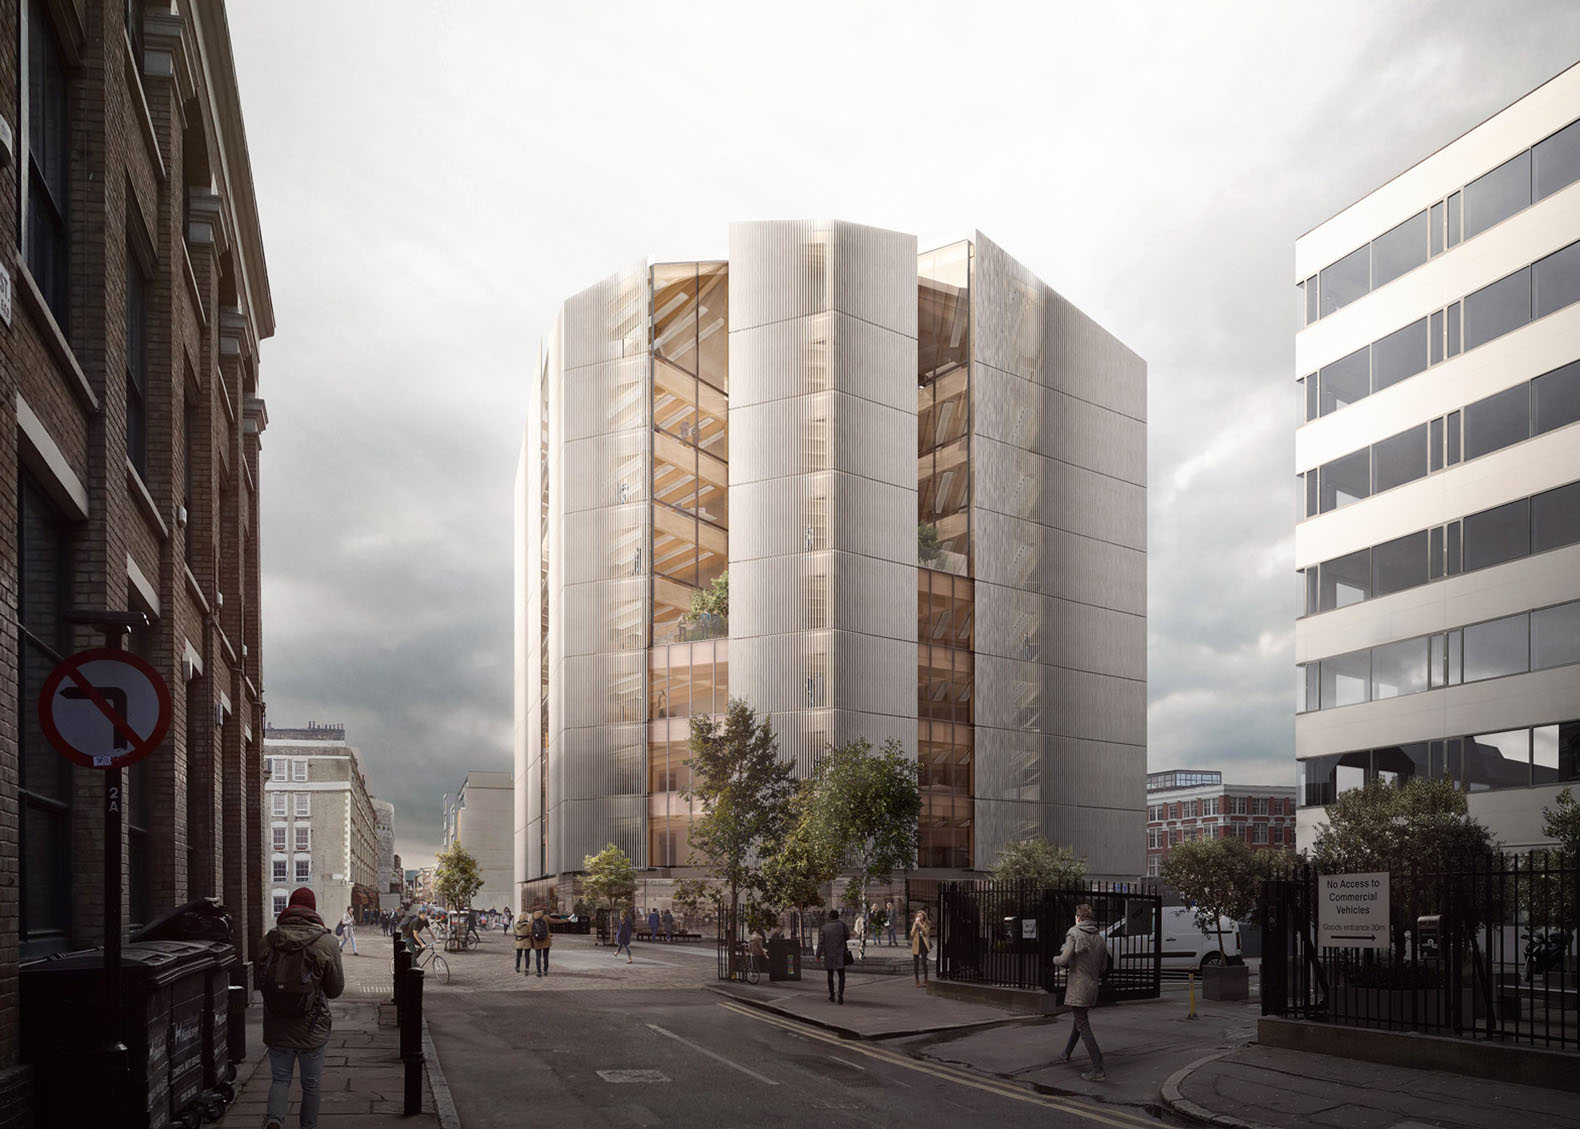 New timber office building will be among the tallest of its kind in London